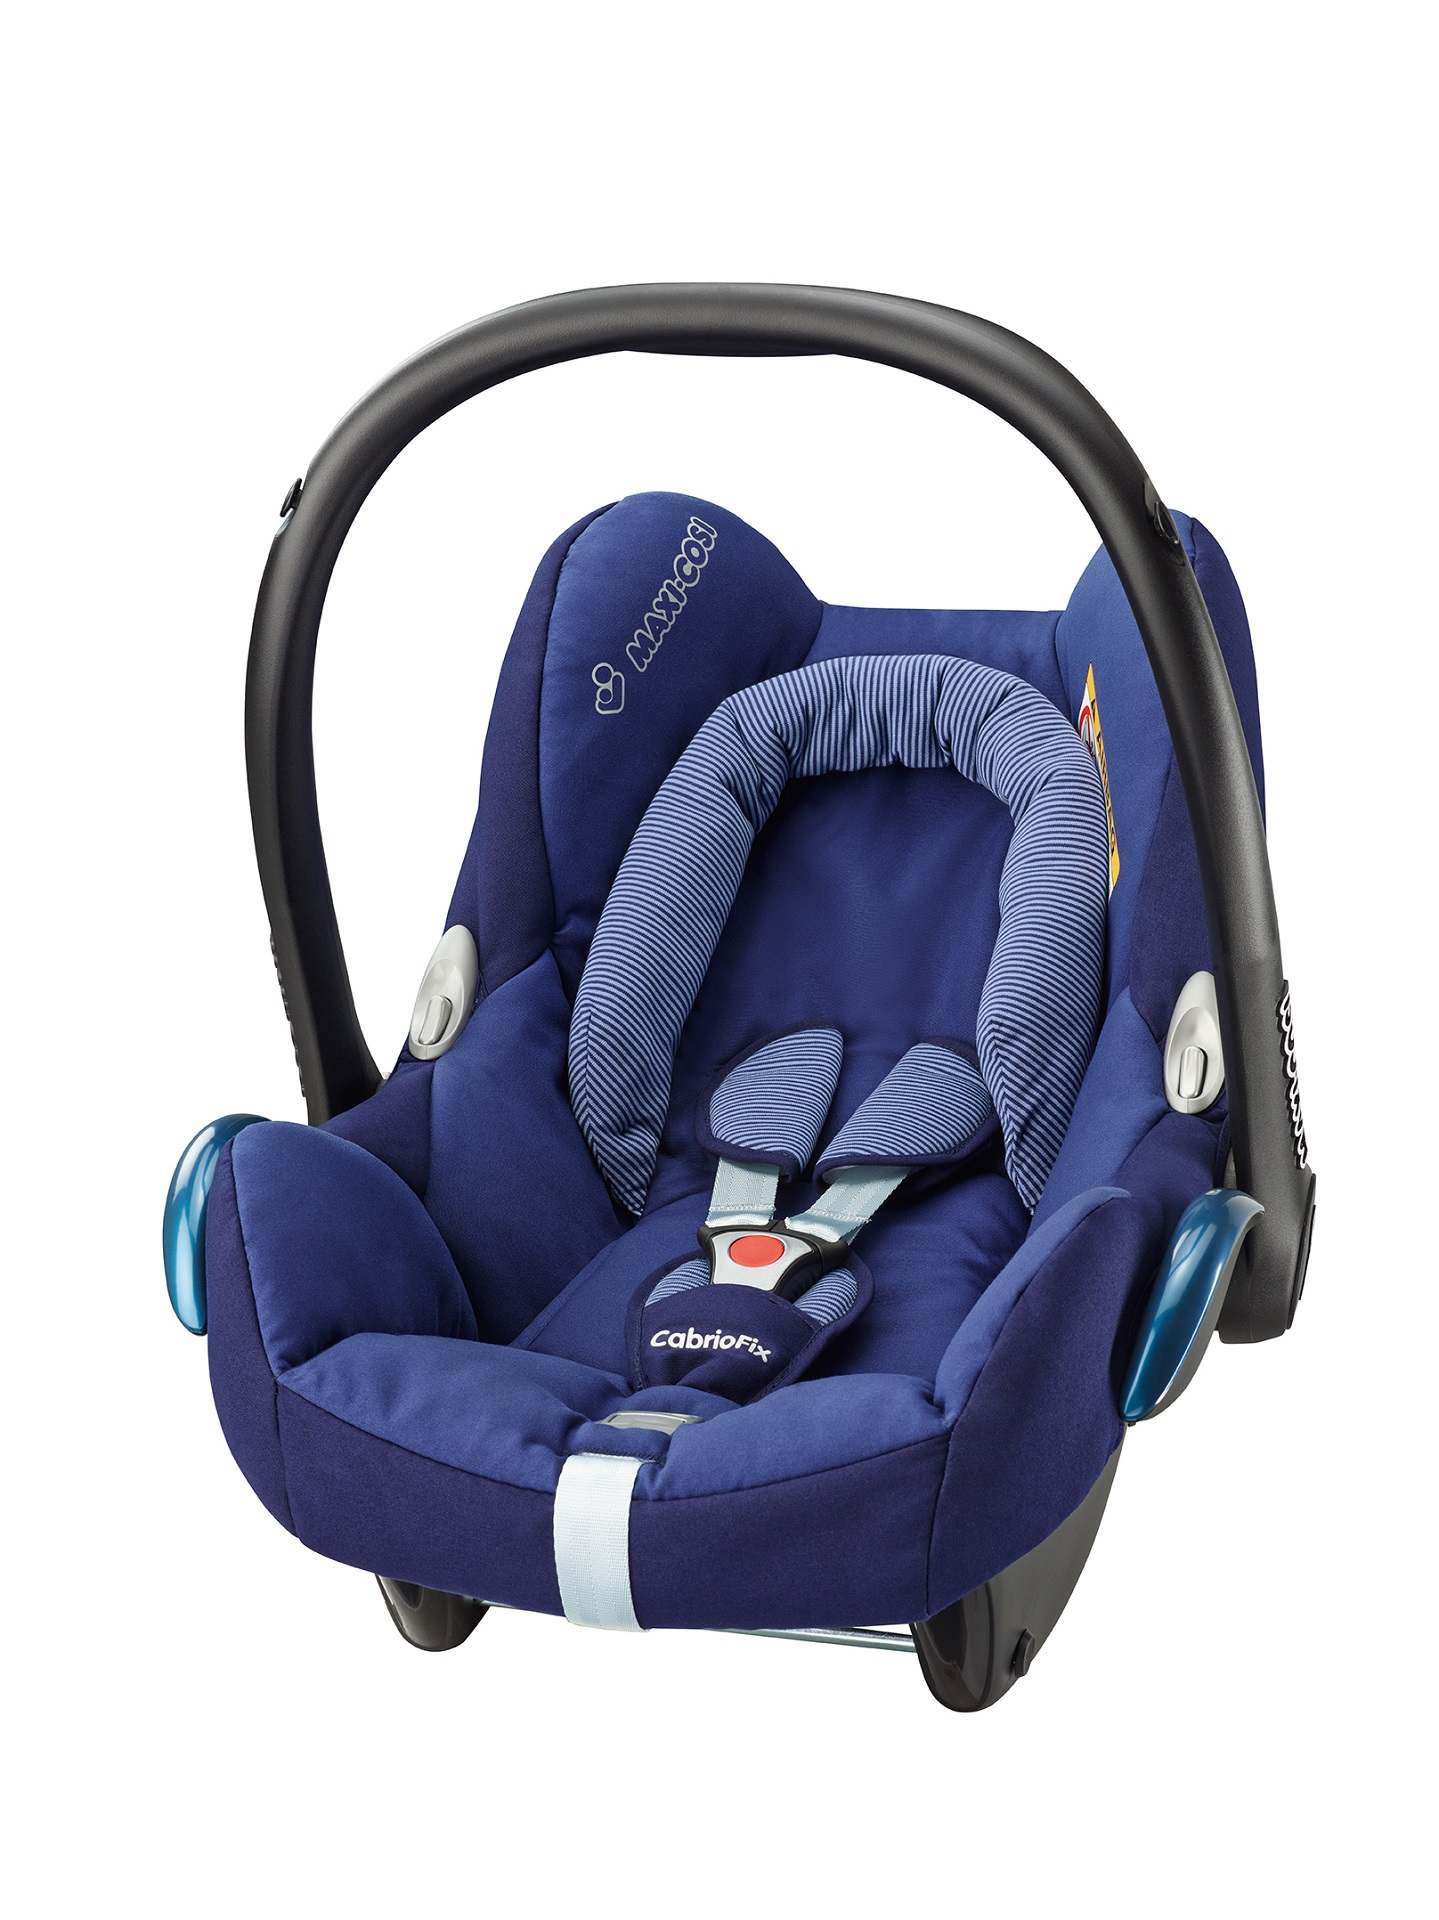 maxi cosi infant carrier cabriofix 2017 river blue buy. Black Bedroom Furniture Sets. Home Design Ideas